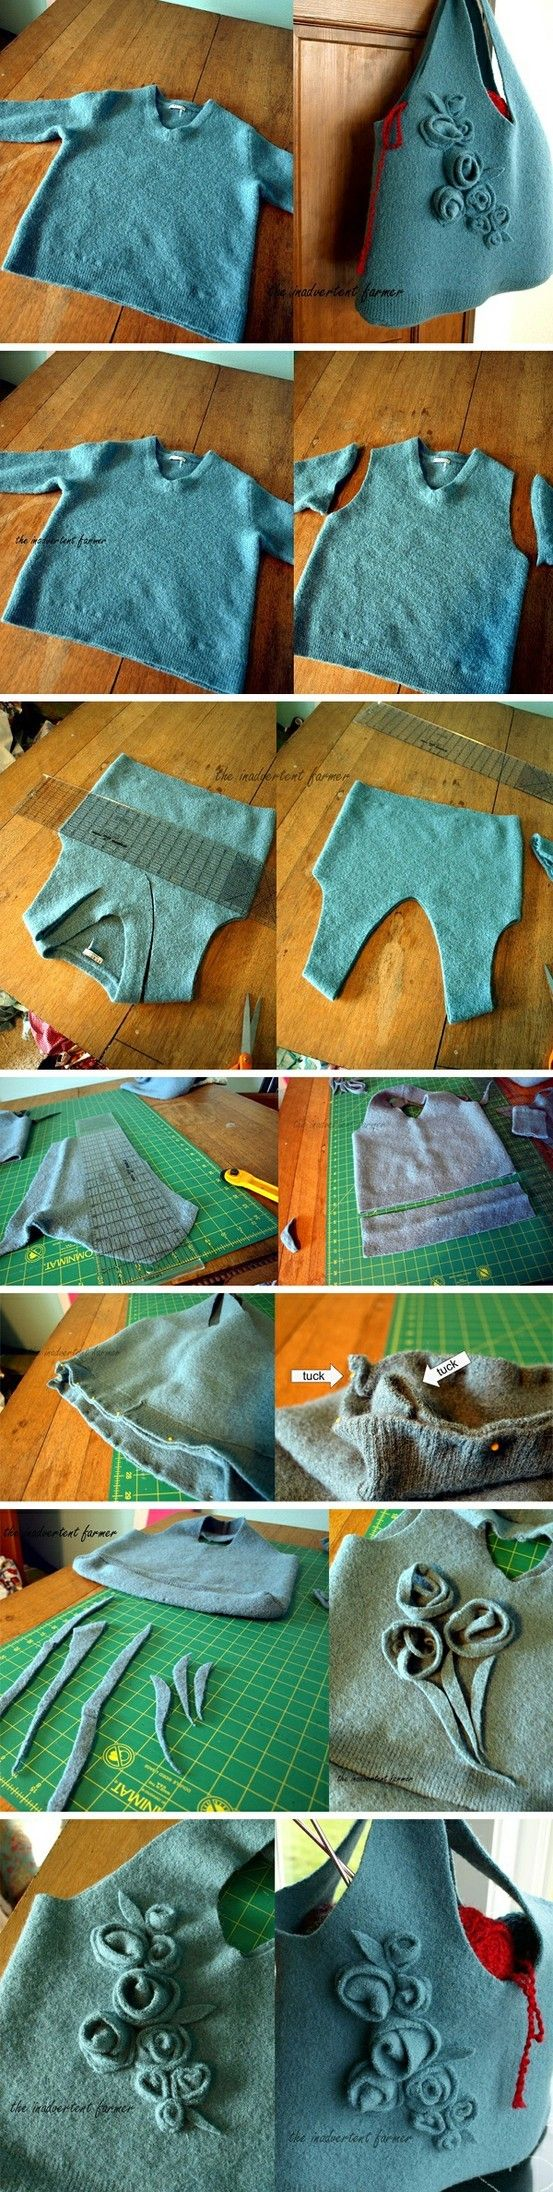 Excellent step-by-step for turning a sweater into a bag.